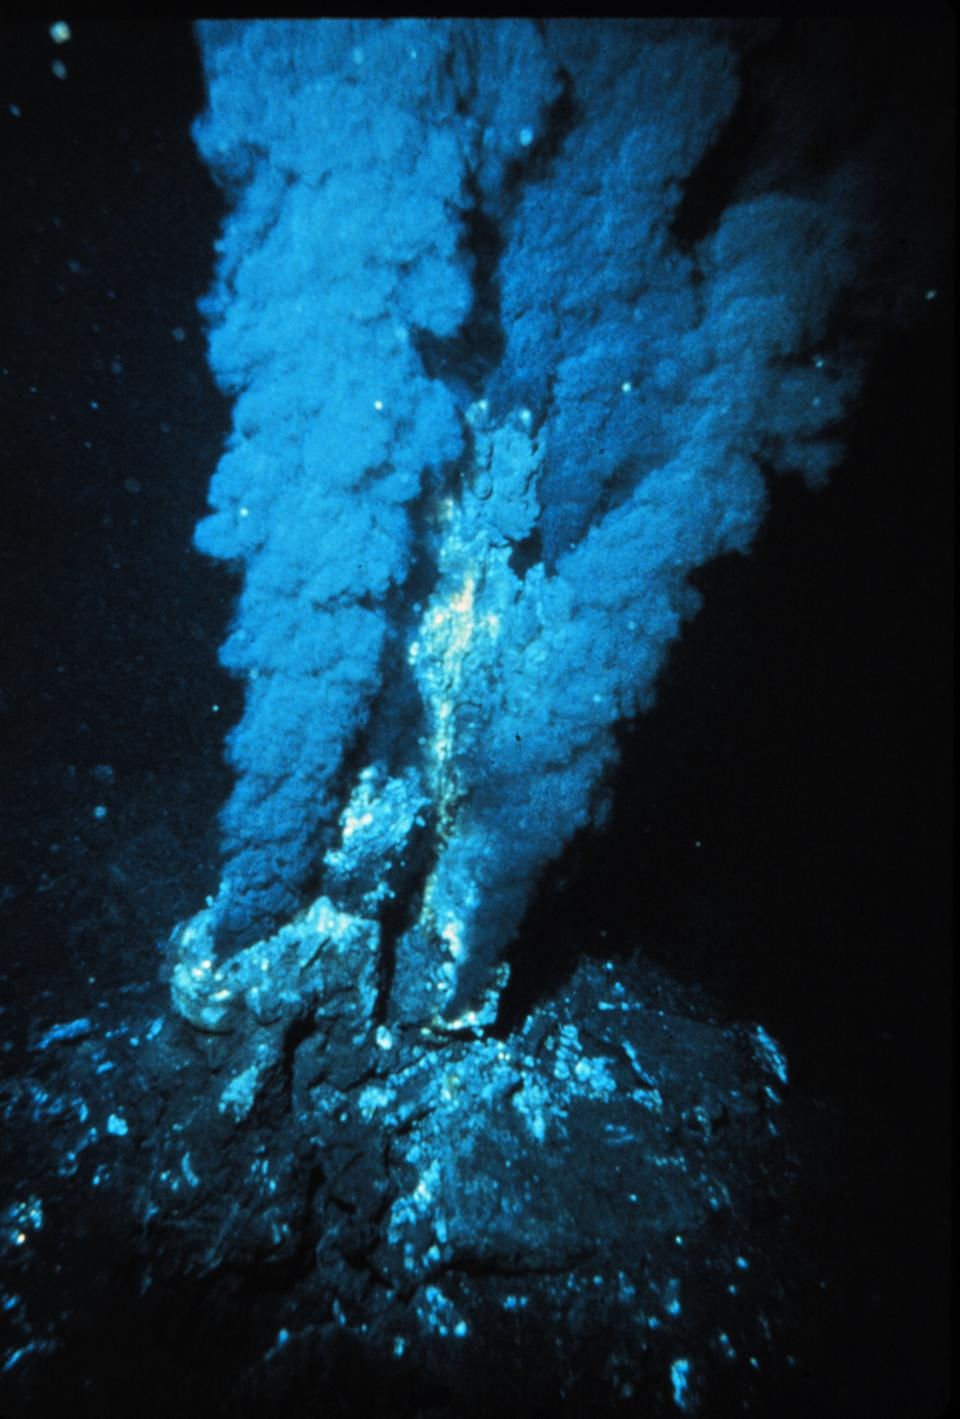 Hydrothermal vents along mid-ocean ridges house extremophile life forms.